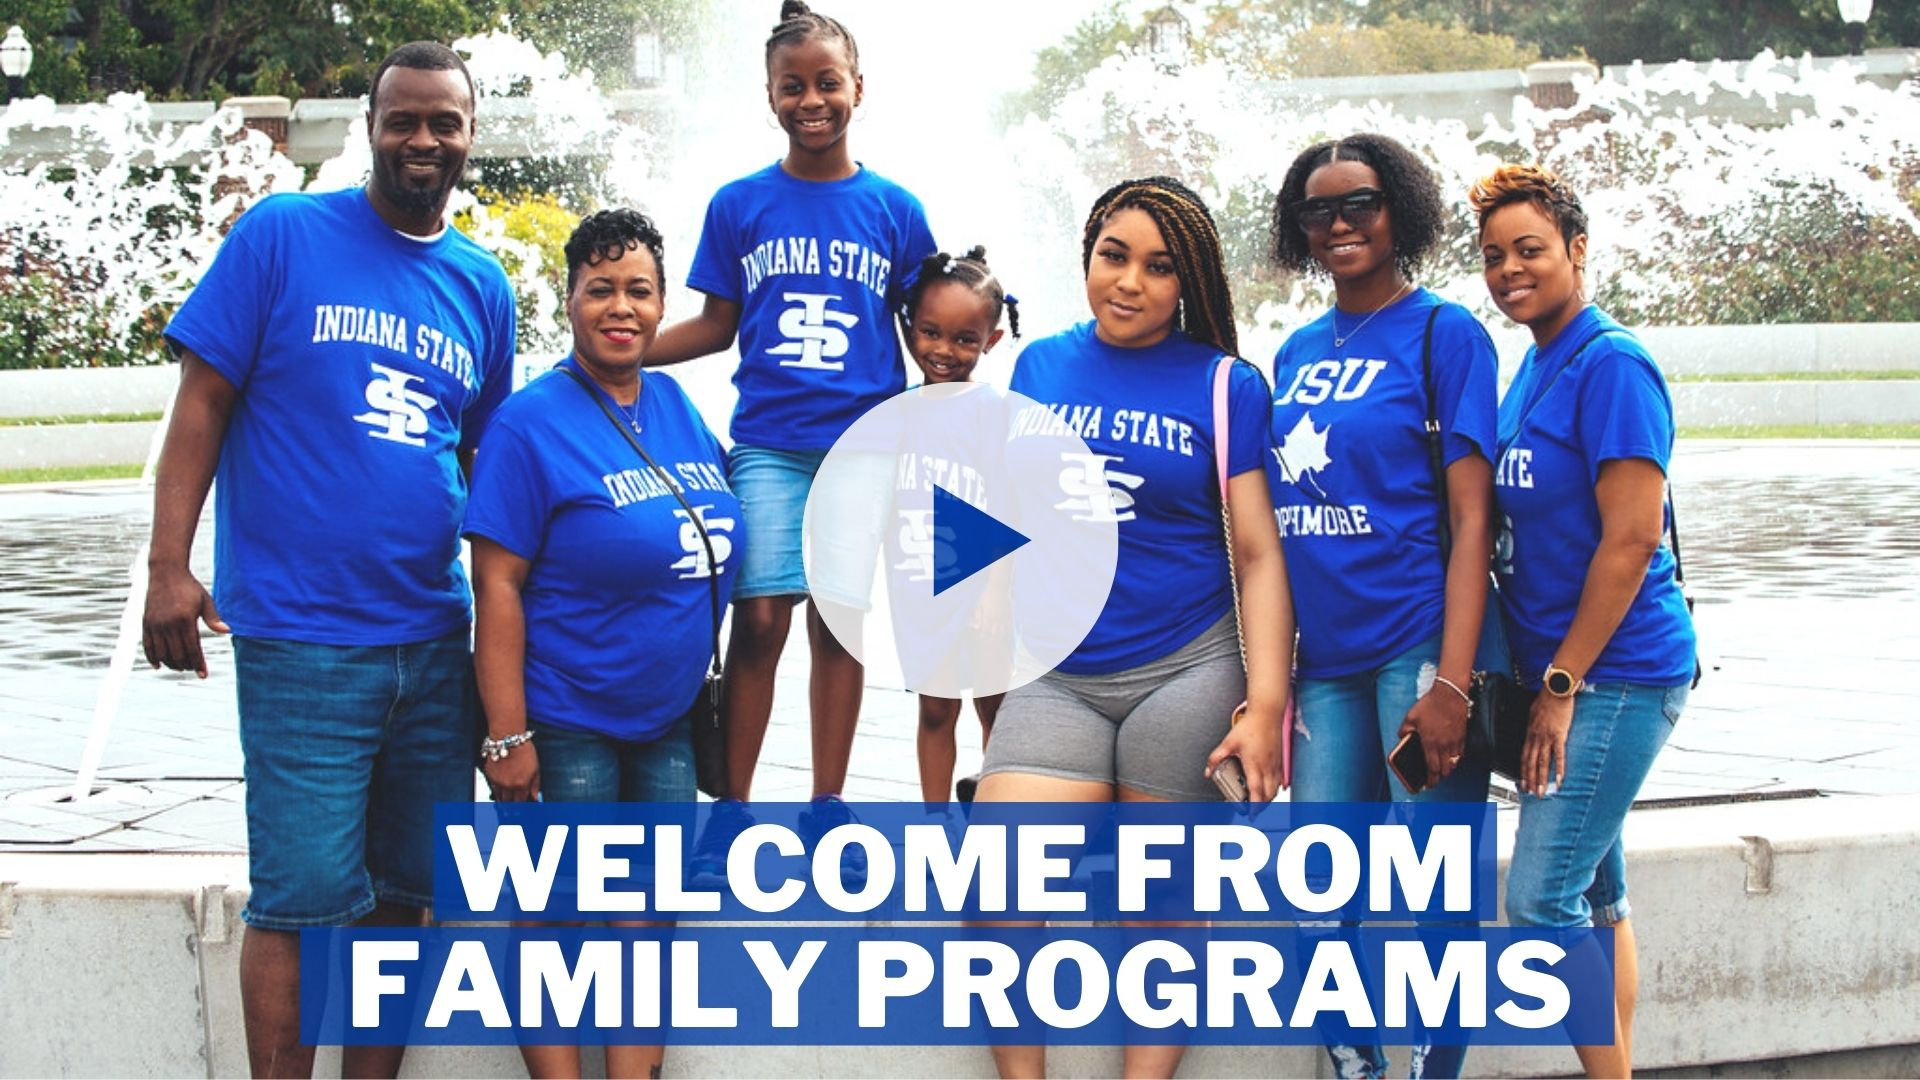 Welcome from Family Programs